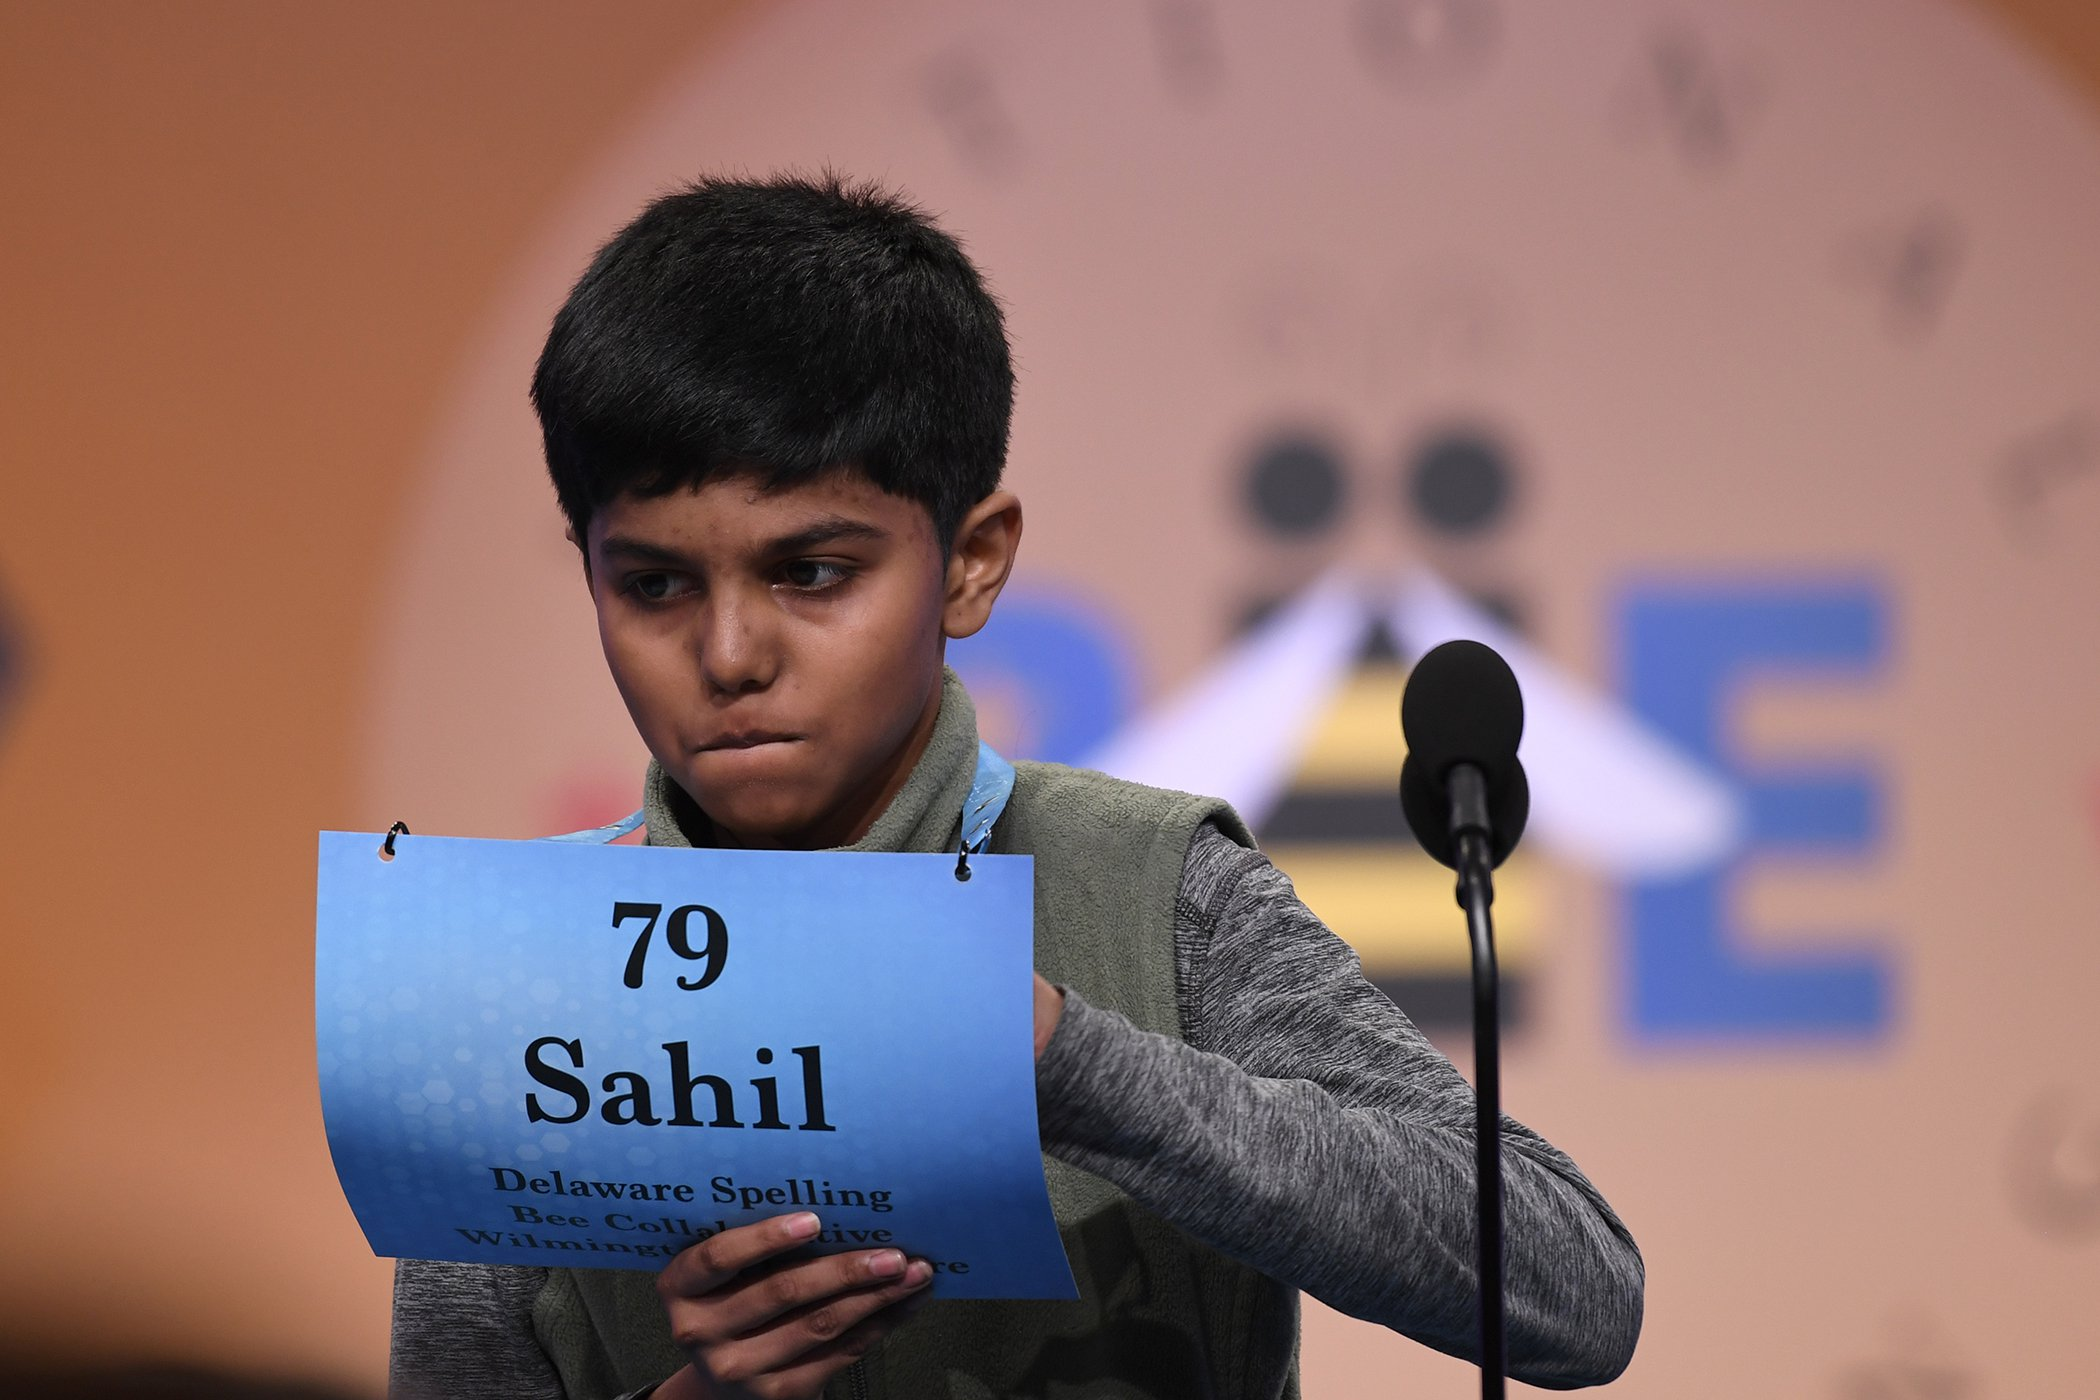 Spelling-Bee-Competition-2019.jpg